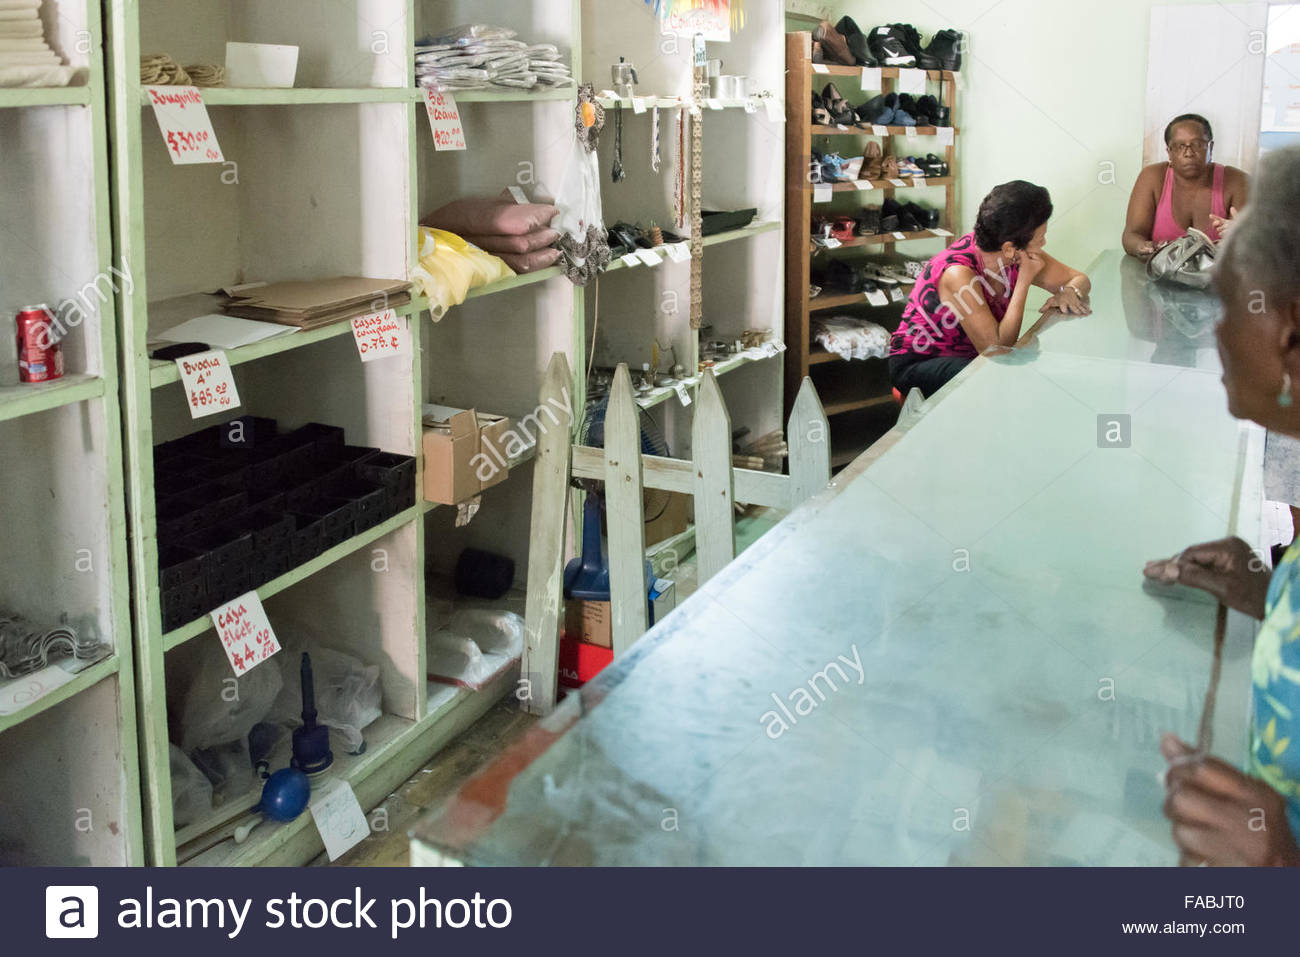 Division of work in a Cuban store in Pinar del Rio,Cuba A little fence divides the work on one employee from the Stock Photo